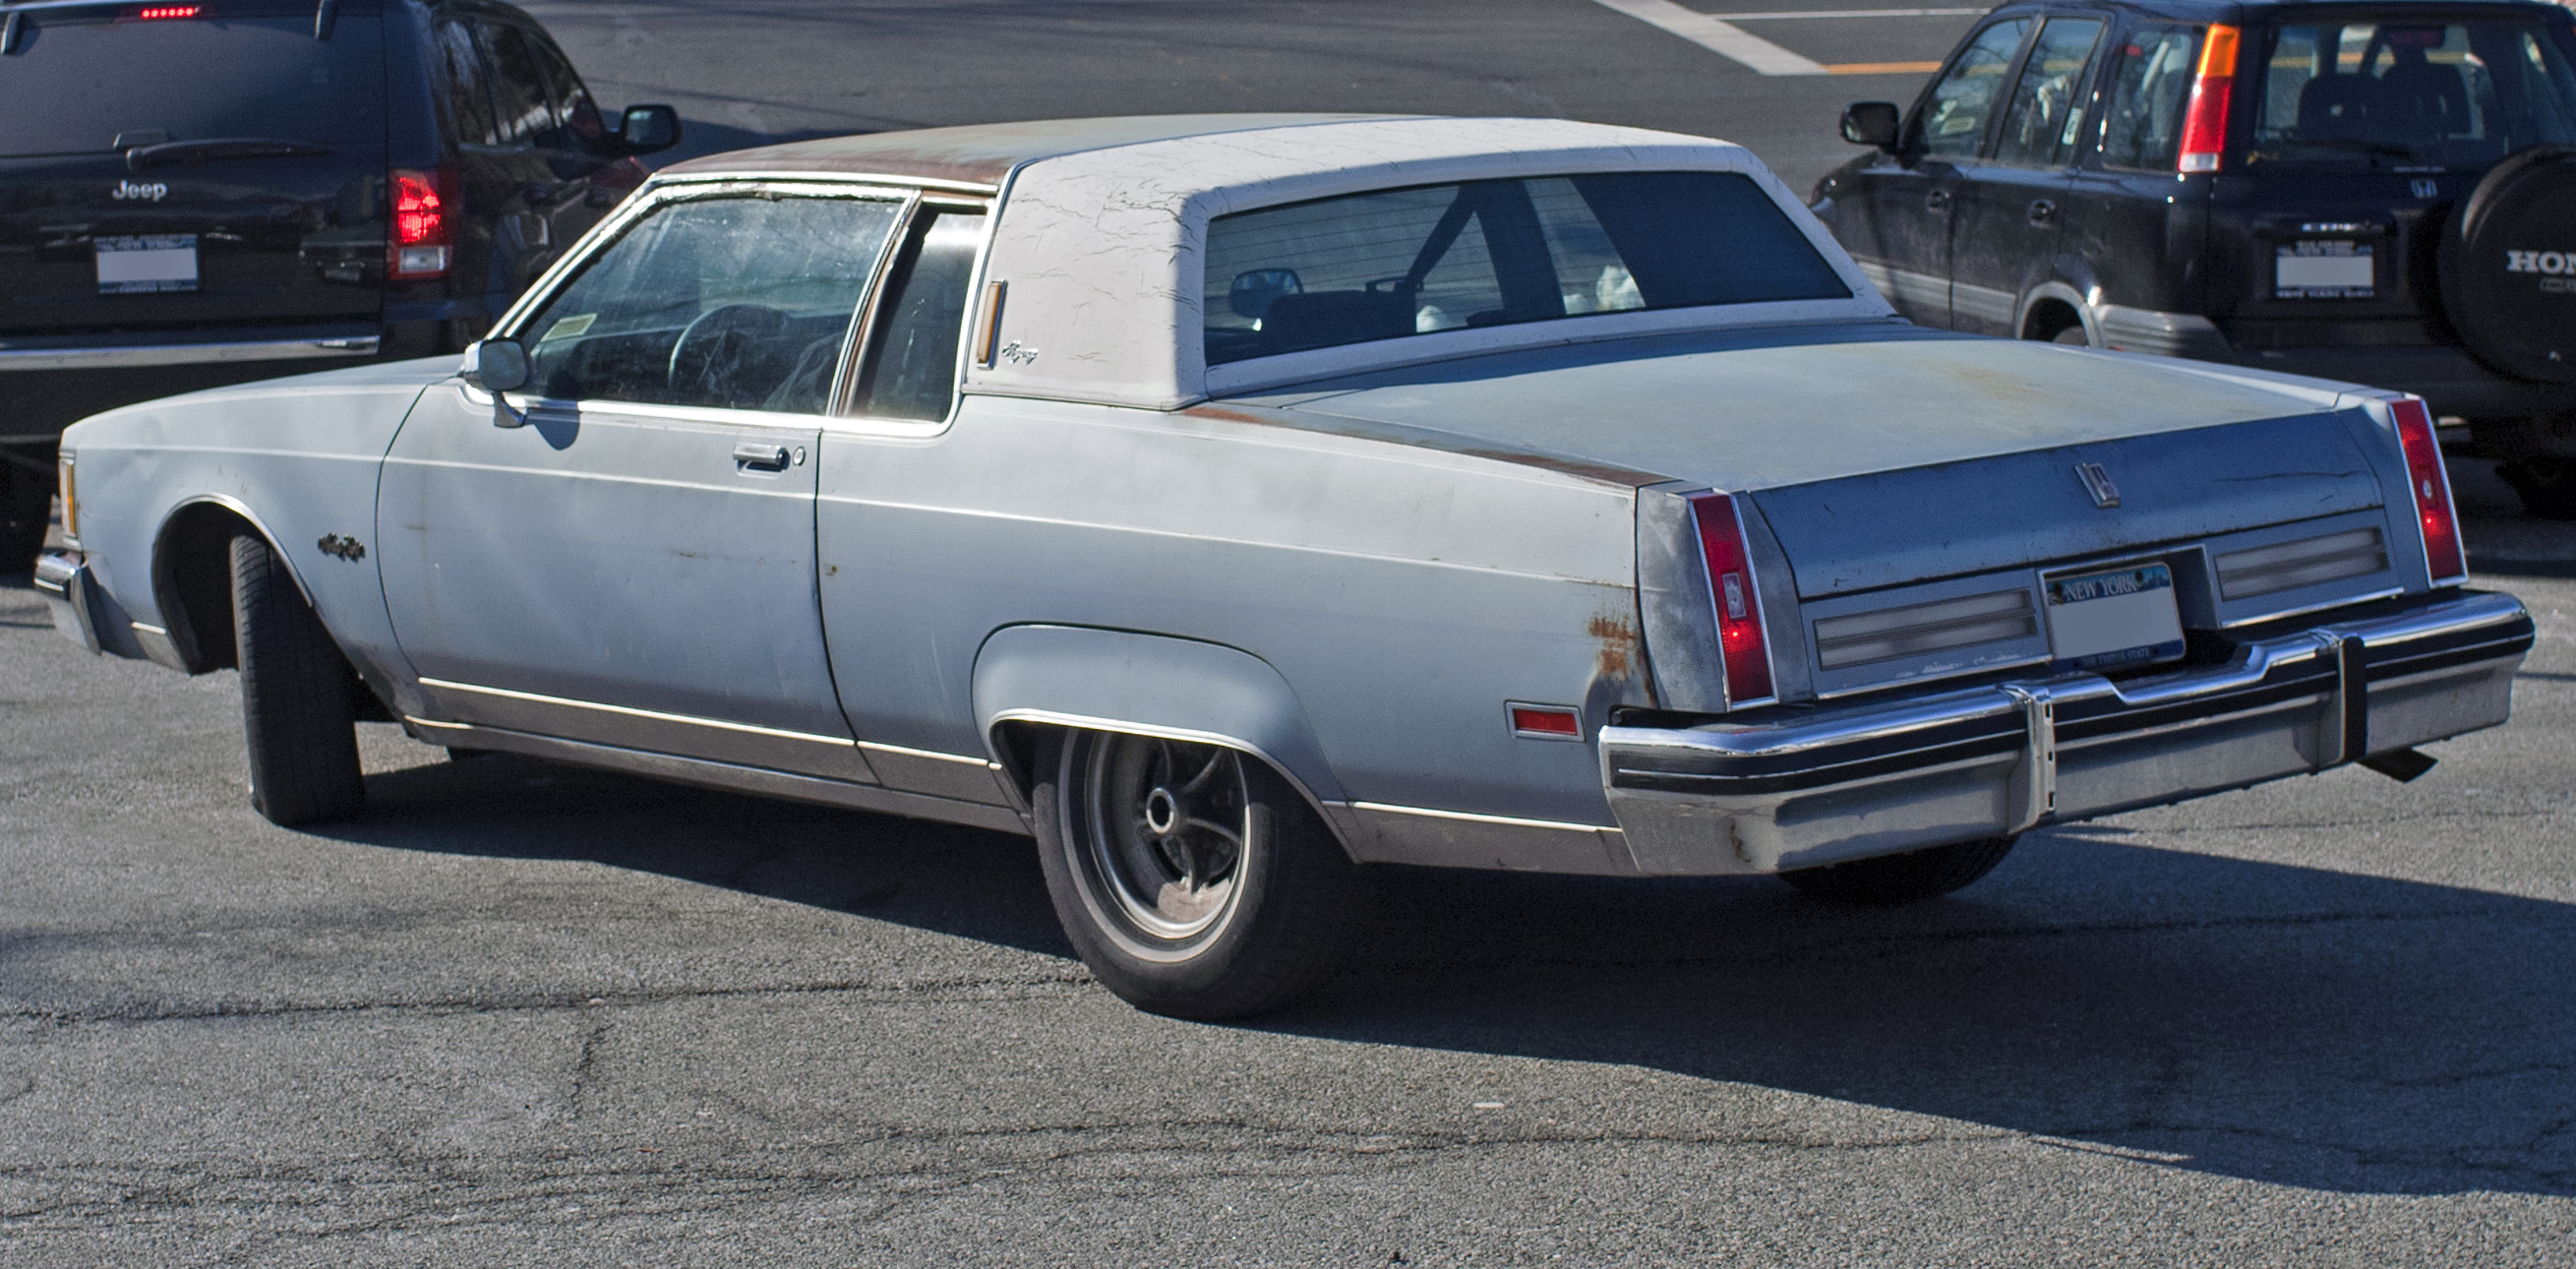 84 Oldsmobile 98 Regency http://commons.wikimedia.org/wiki/File:1980-84_Oldsmobile_98_Regency_coup%C3%A9.jpg